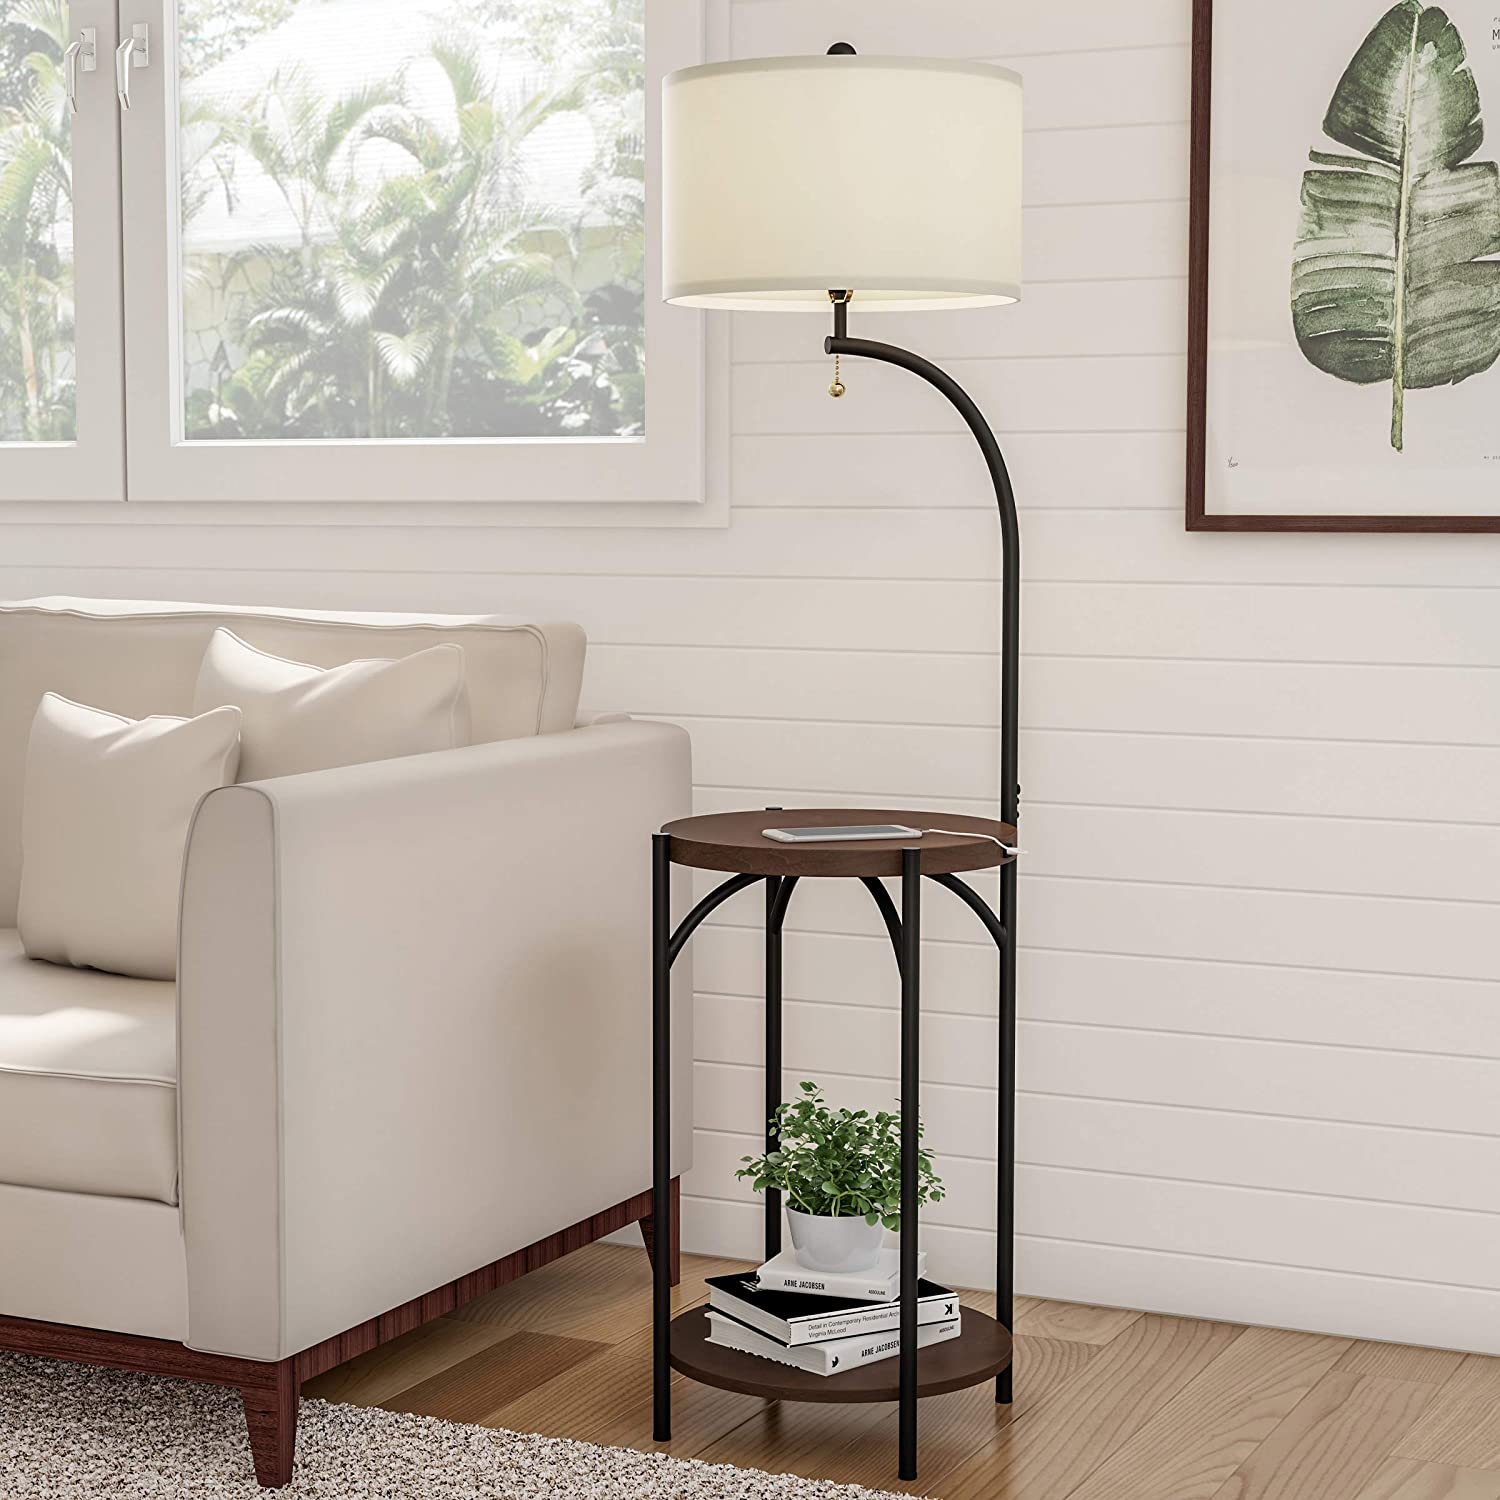 Lavish Home A1000B2 Floor Lamp End Modern Rustic Side Table with Drum Shaped Shade, LED Light Bulb Included, USB Charging Port and Storage Shelf, Various